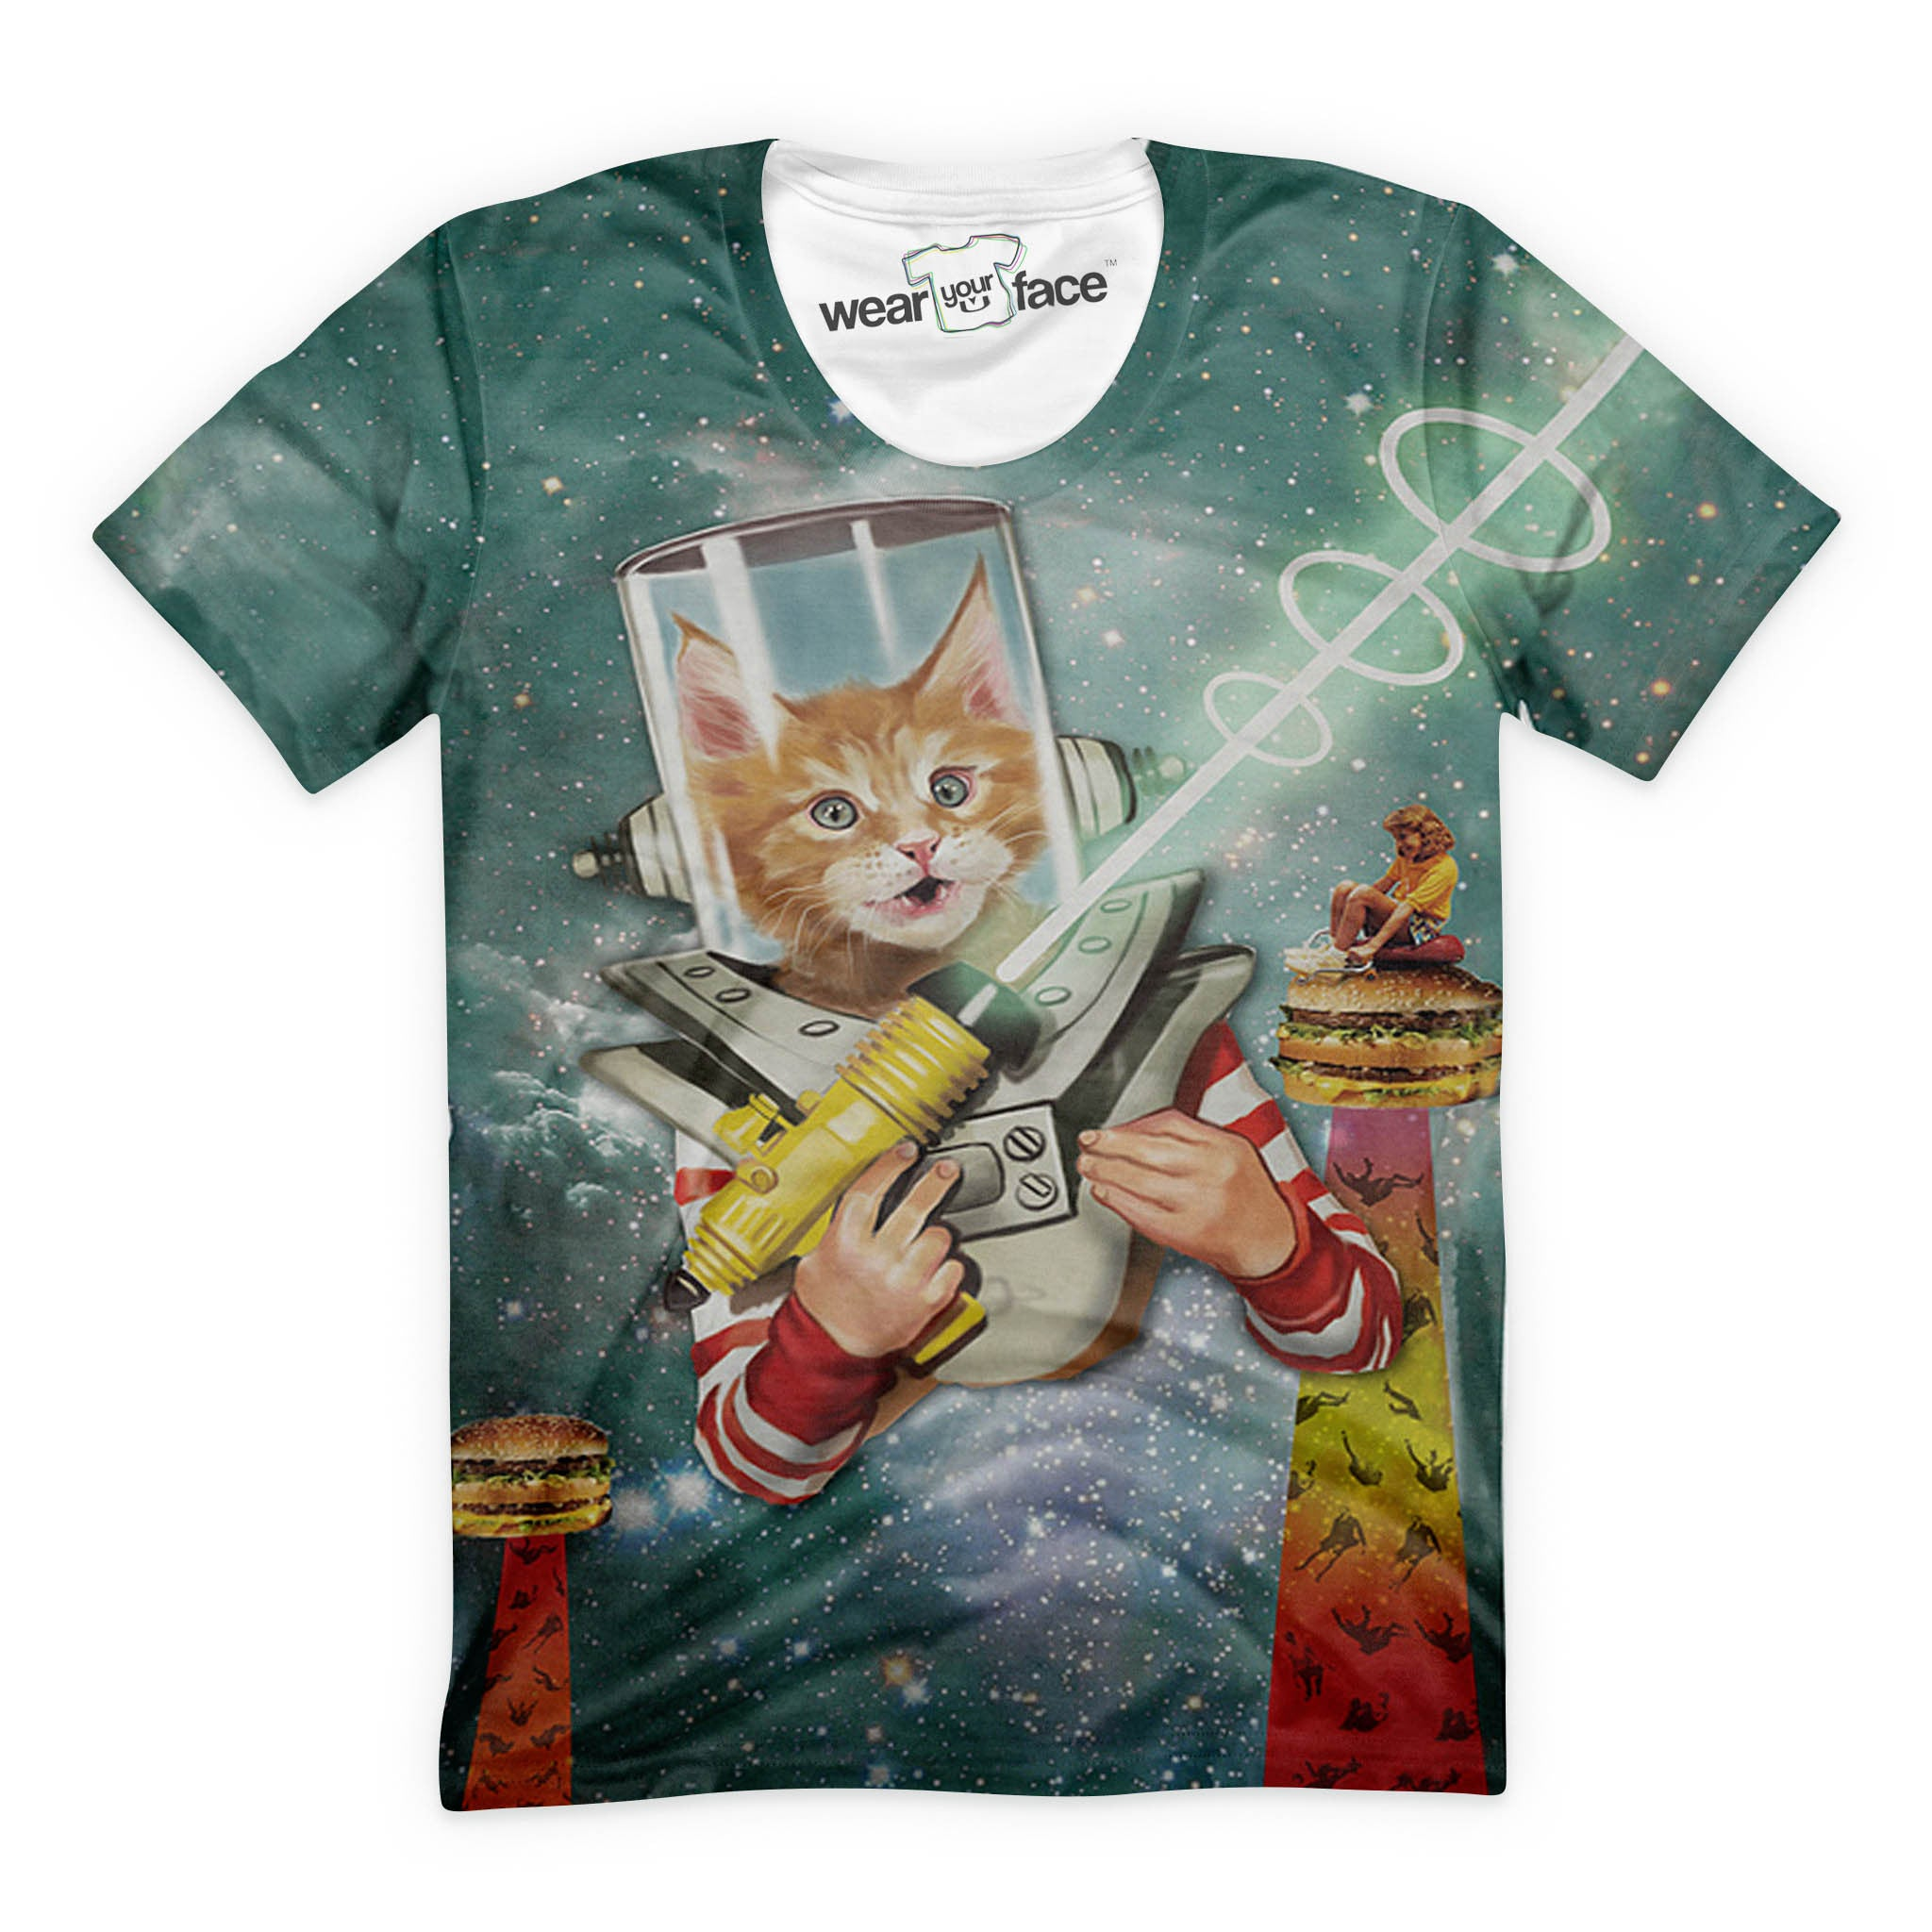 Captain Laser Beam T-Shirt